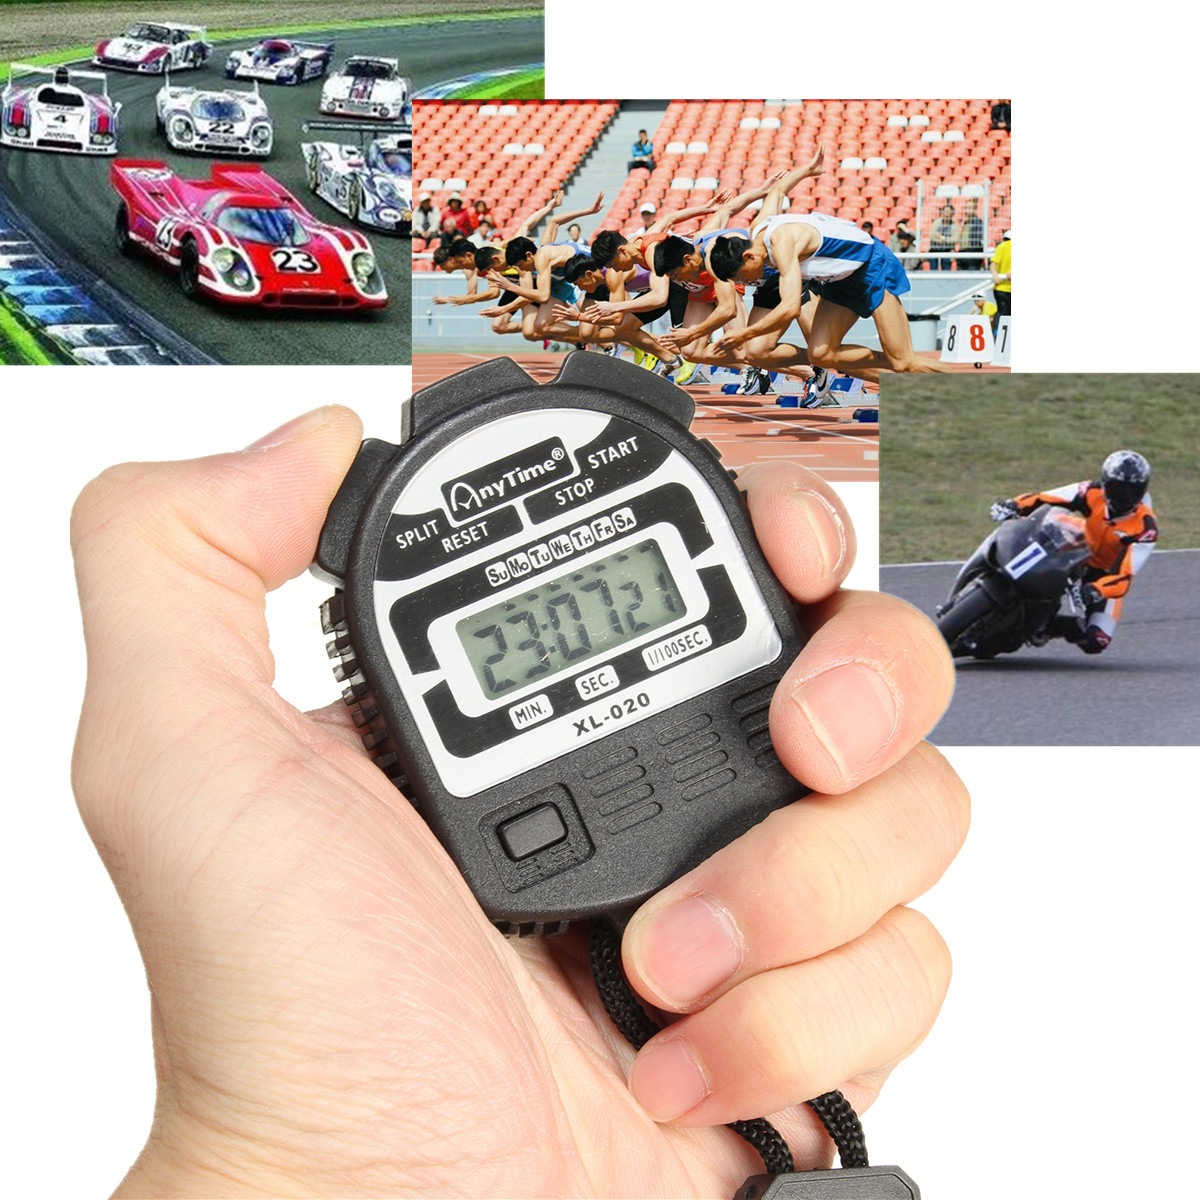 Sports Digital Stopwatch Handheld Stop Watch Clock Alarm Counter Running Timer